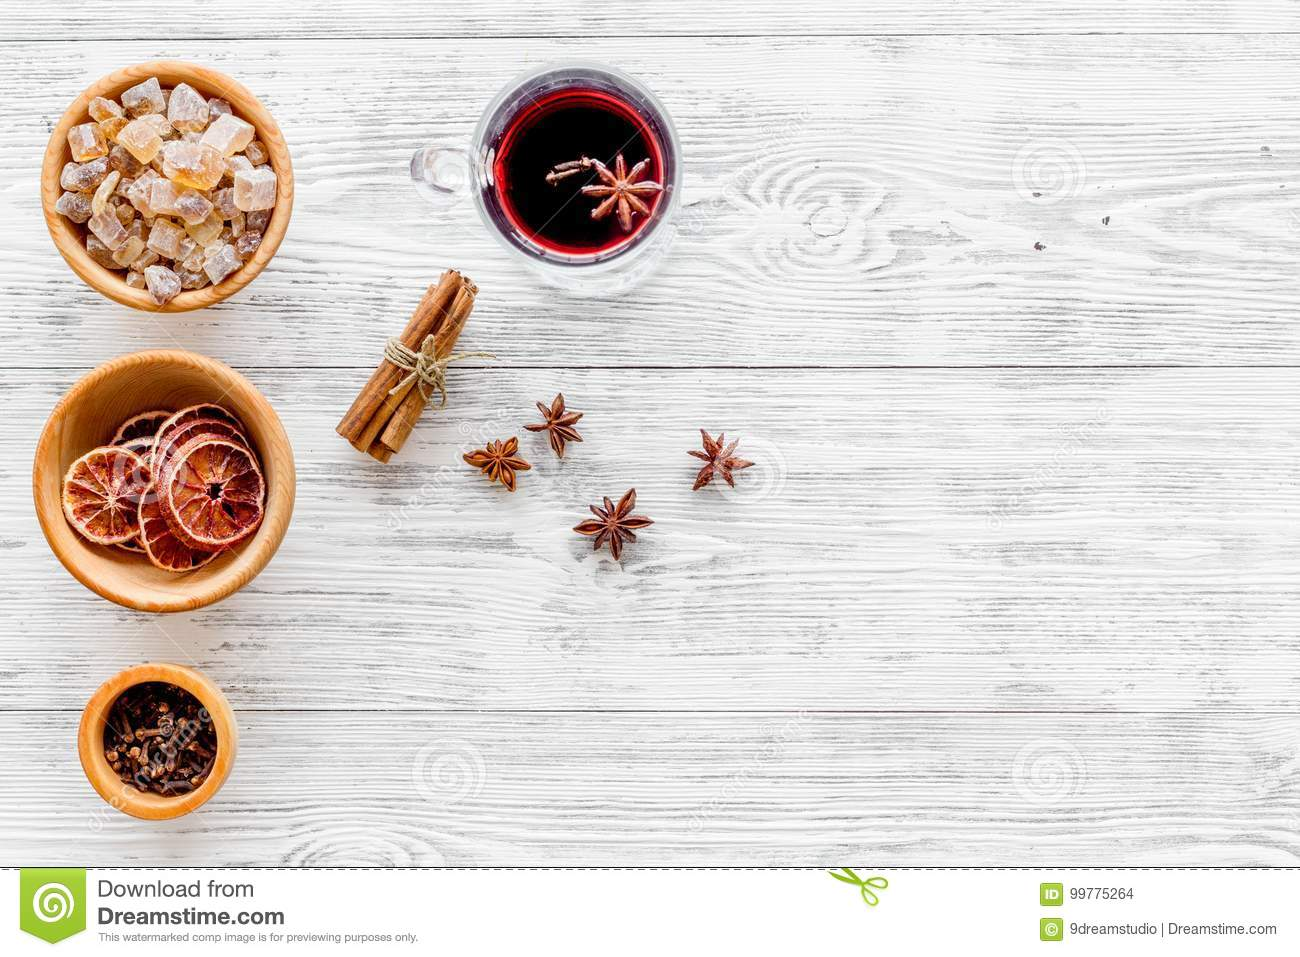 Merry christmas in winter evening with warm drink. Hot mulled wine or grog with fruits and spices on light background